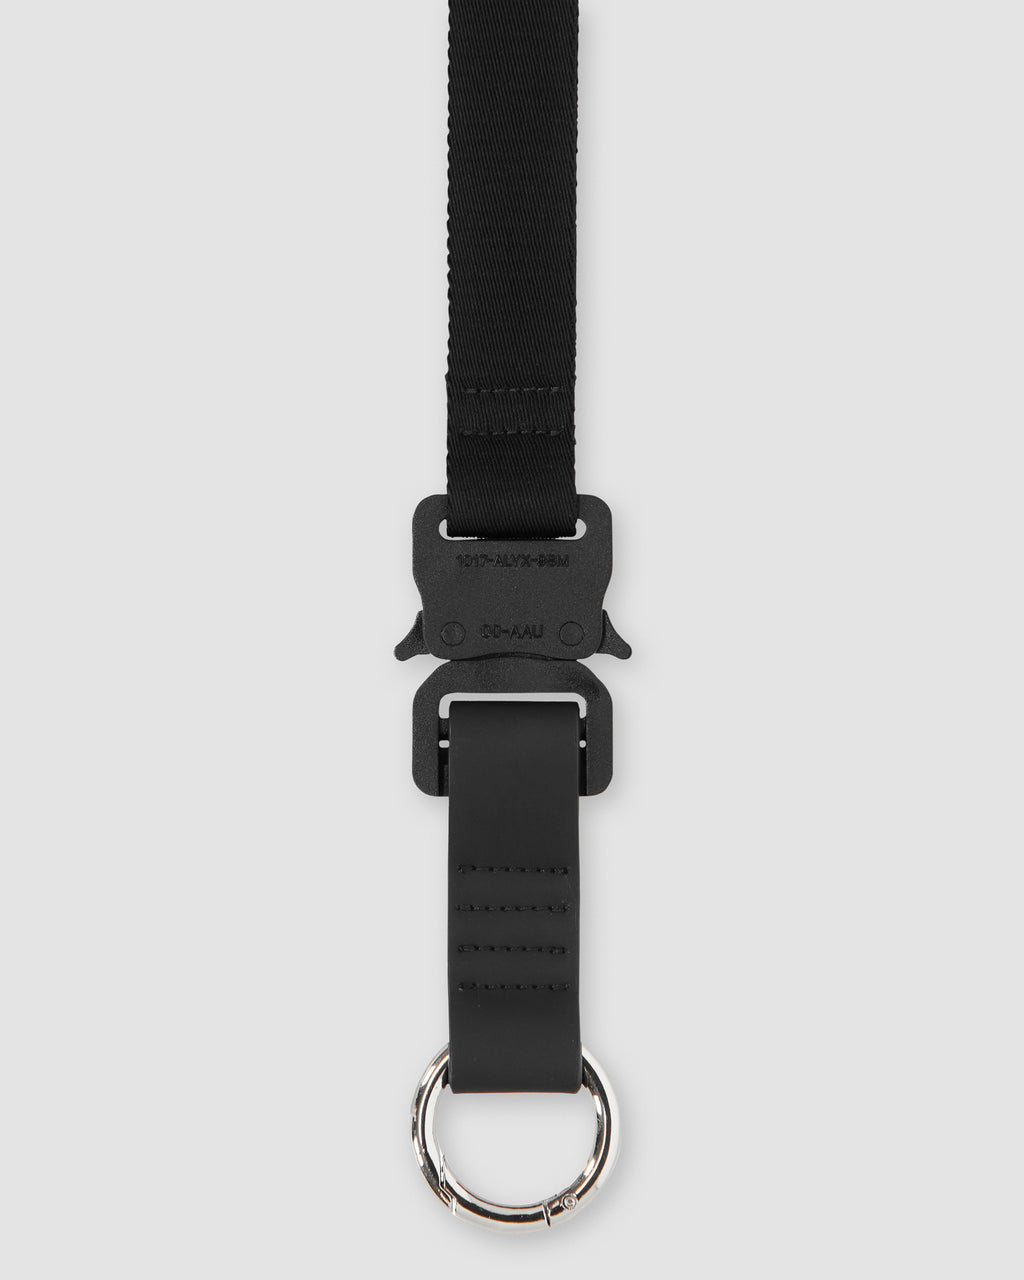 1017 ALYX 9SM | CLASSIC LANYARD | Keychain | Accessories, BLACK, Google Shopping, Keychain, KEYCHAINS, Man, S20, SS20, UNISEX, Woman